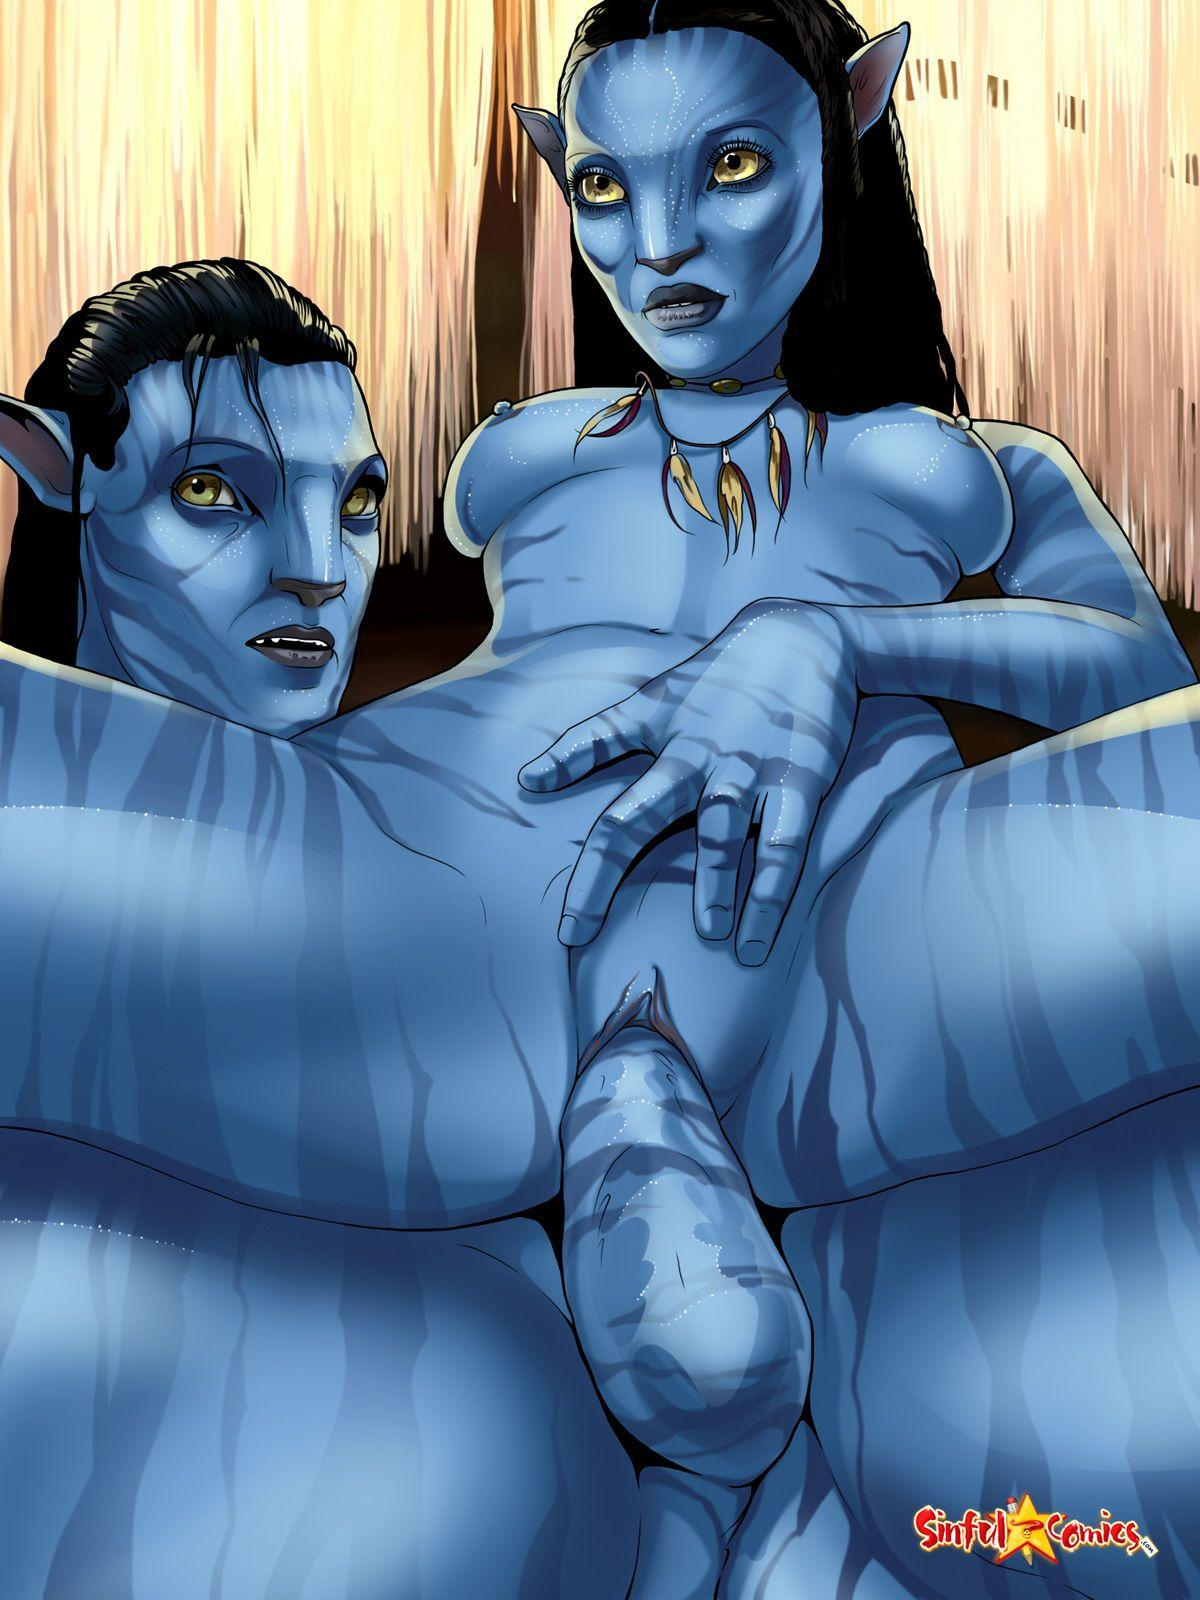 Avatar Alien Porn avatar sex picture pussy . adult videos.